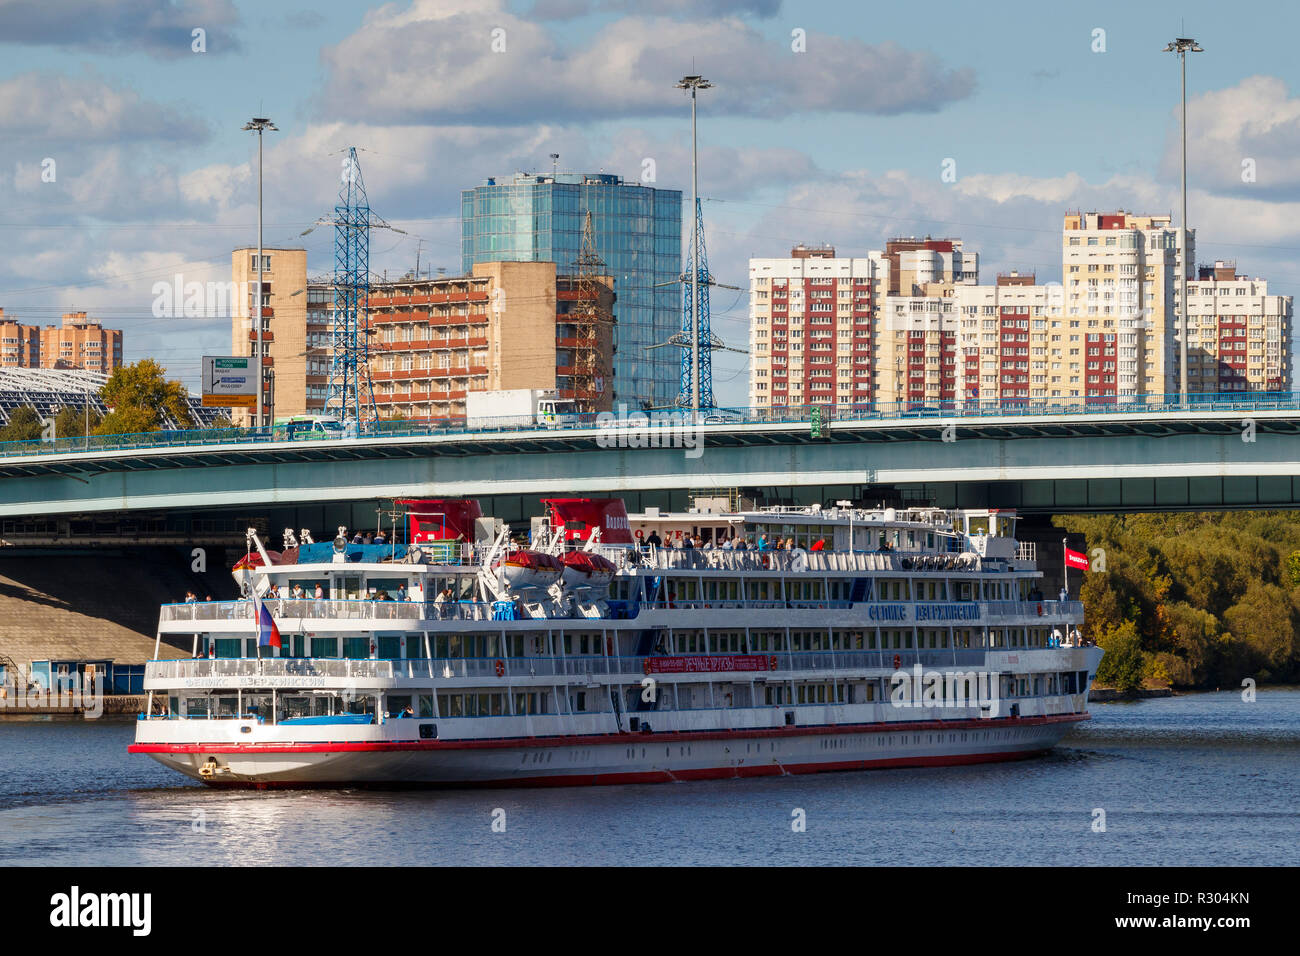 The 1978 Felix Dzerzhinsky cruise ship on the Moscow Canal in central Moscow as it passes under a road bridge heading to St Petersburg, Russia. - Stock Image